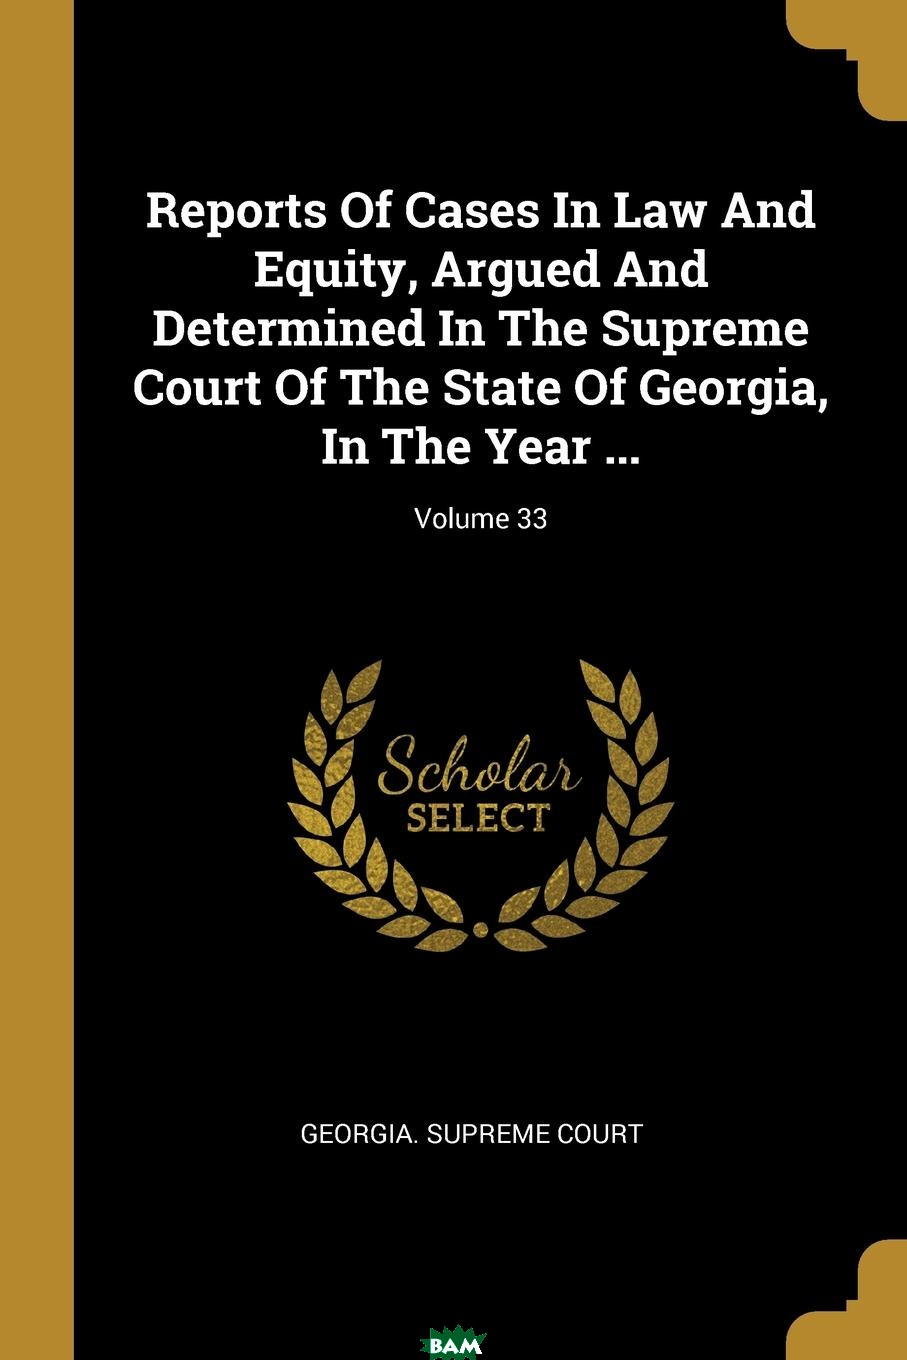 Купить Reports Of Cases In Law And Equity, Argued And Determined In The Supreme Court Of The State Of Georgia, In The Year ...; Volume 33, Georgia. Supreme Court, 9781011273522